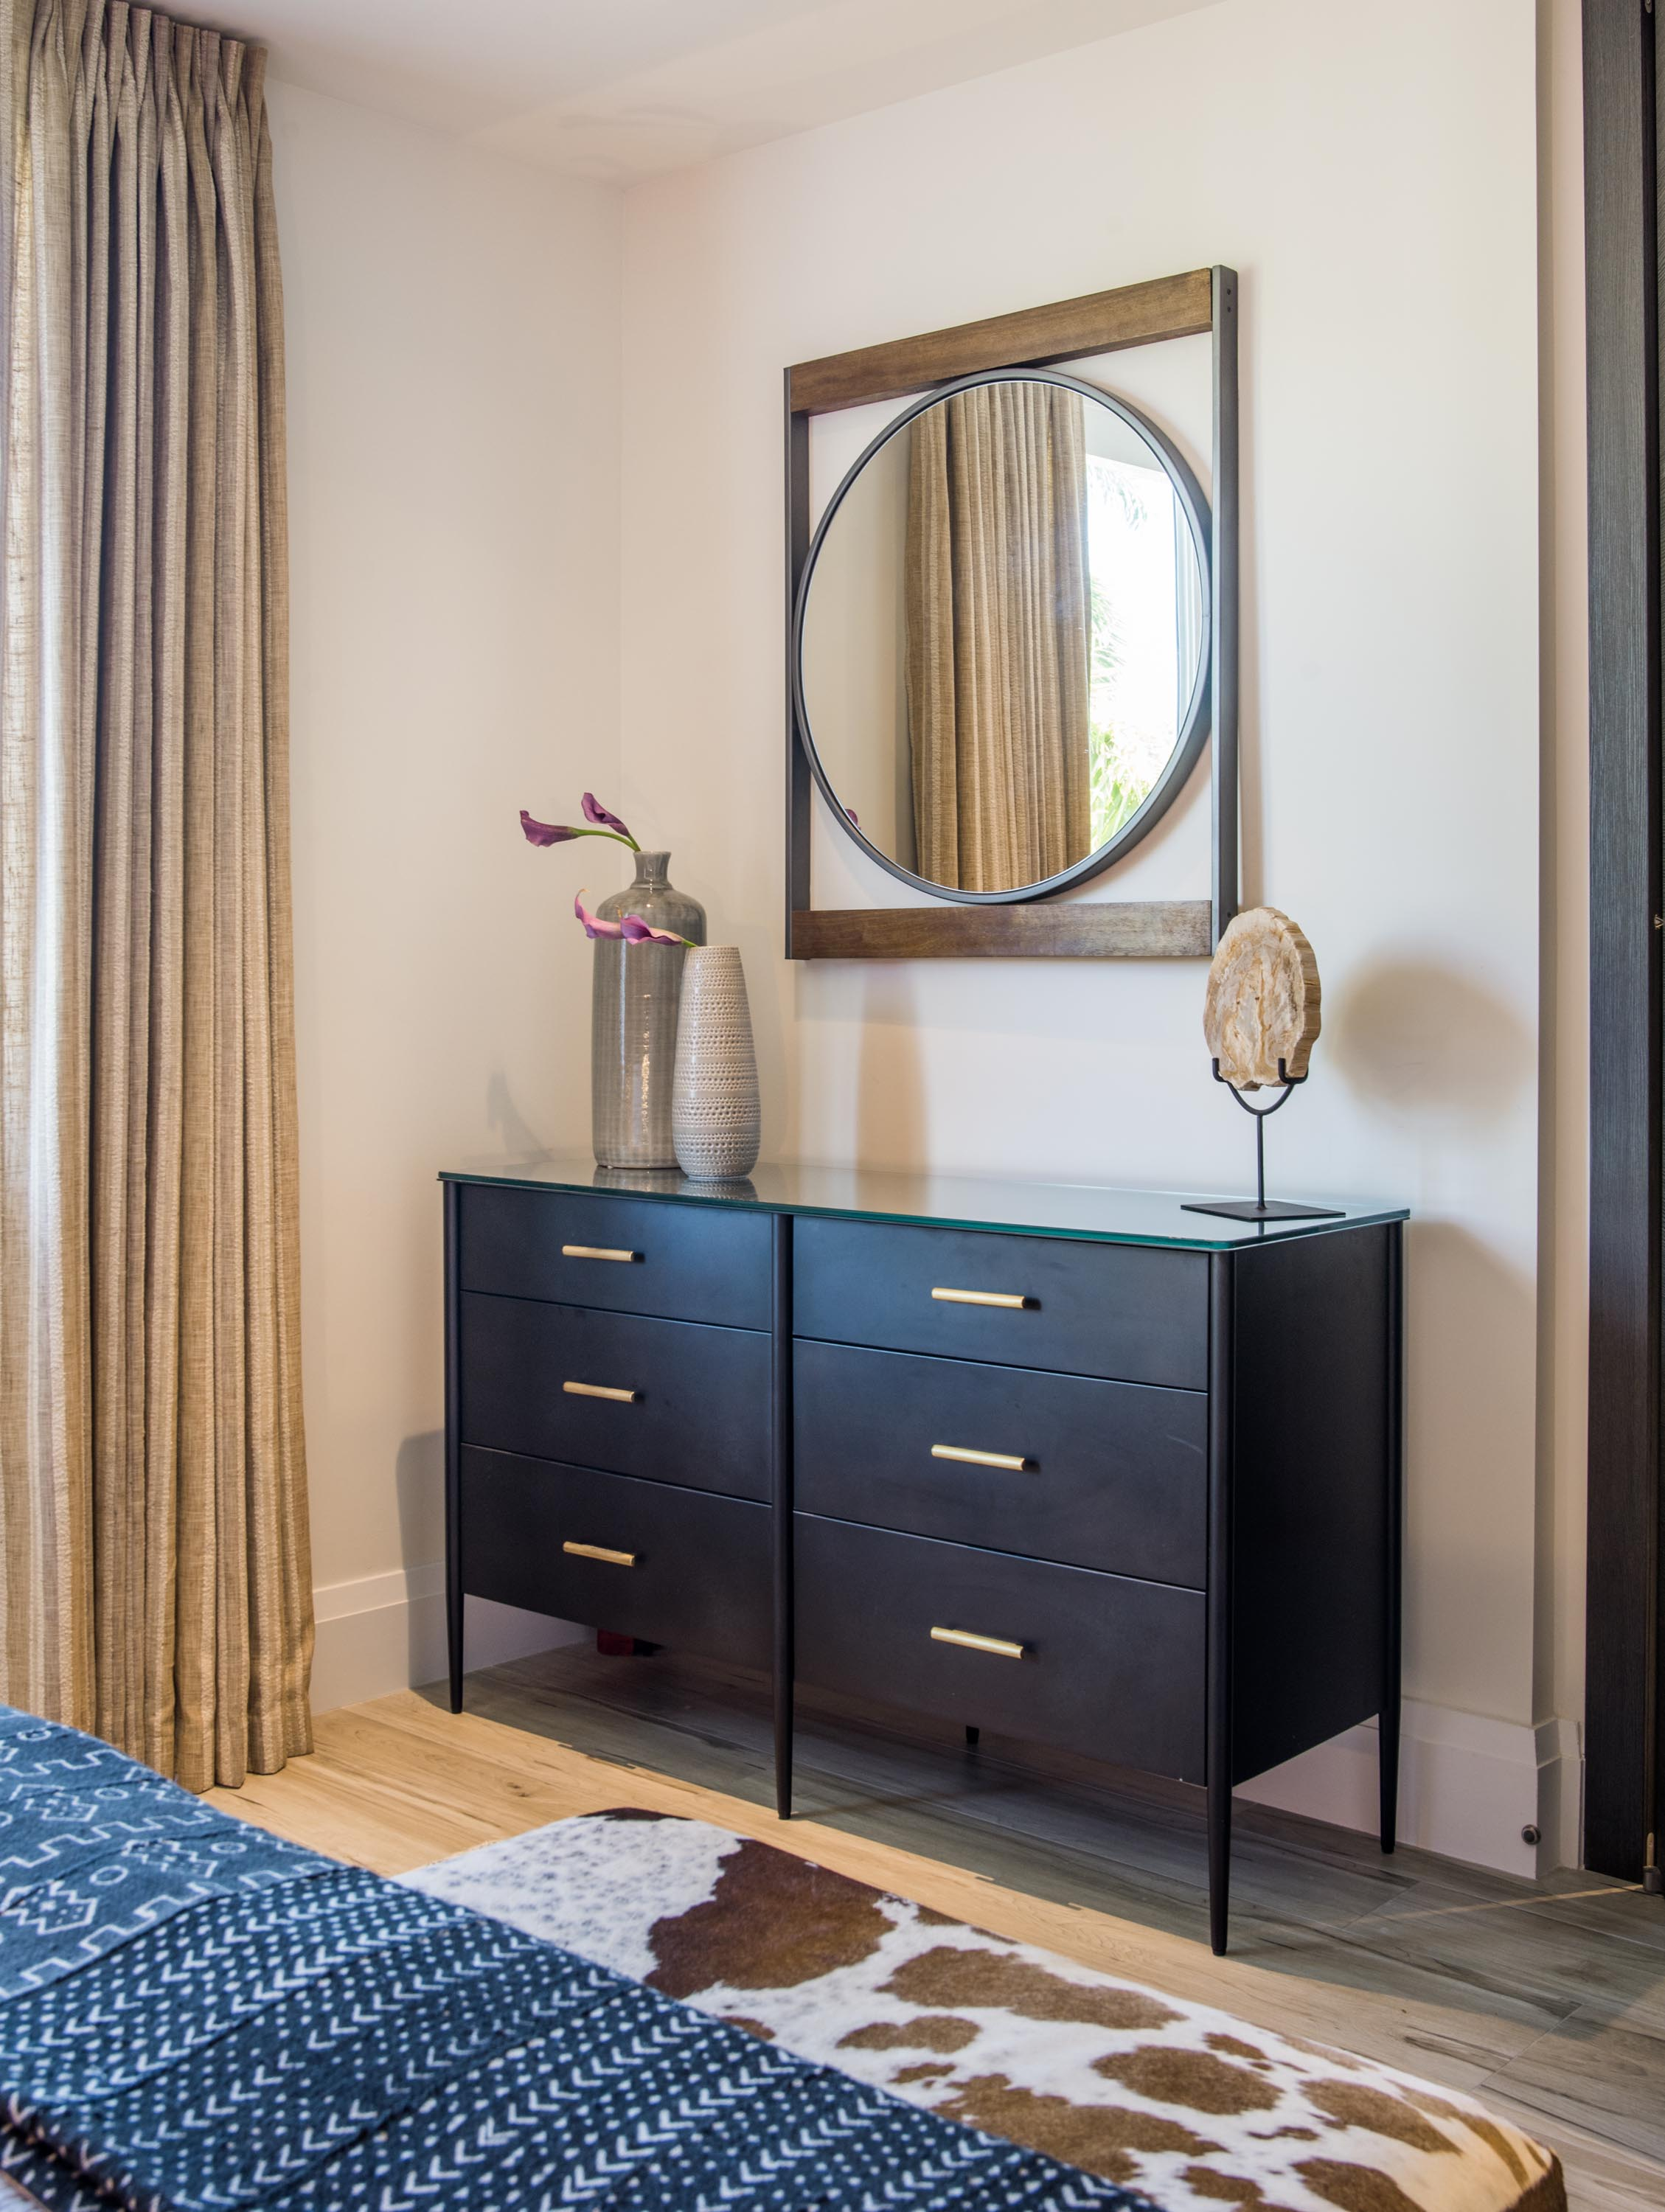 Bedroom with wooden drawer, round mirror on the wall, custom accessories and a hardwood floor